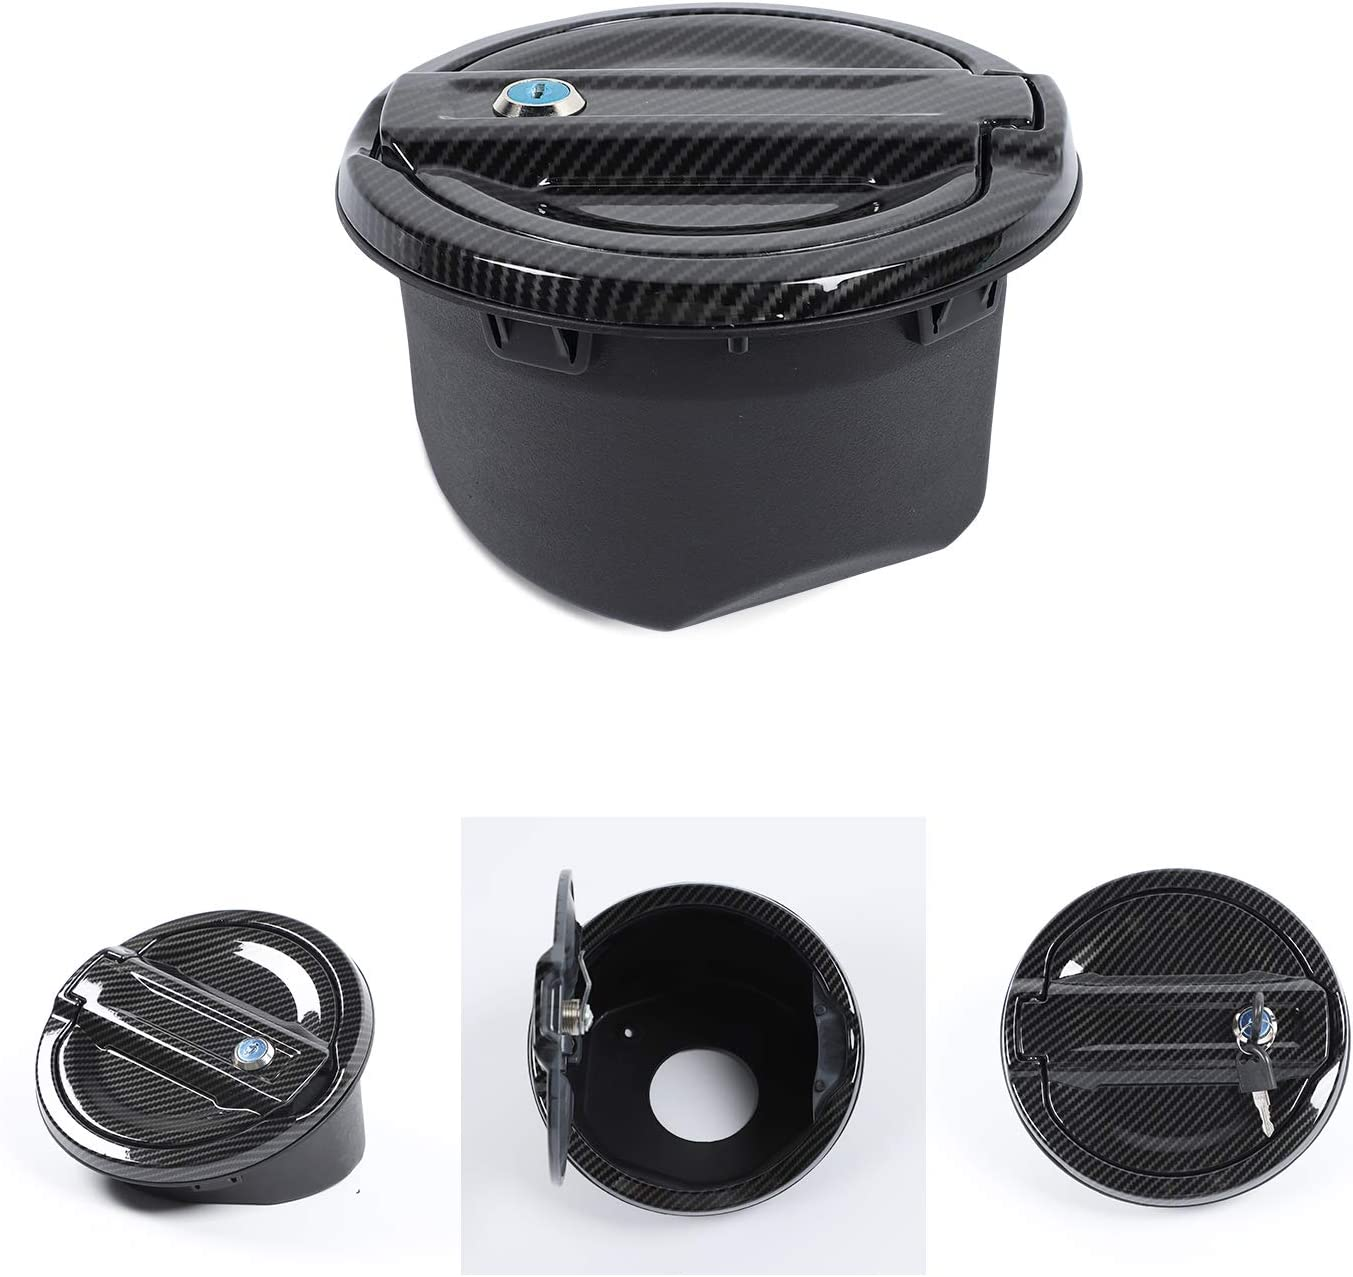 Carbon Fiber RT-TCZ Fuel Filler Door Locking Gas Tank Cap Cover Accessories for 2018 2019 2020 Jeep Wrangler JL JLU